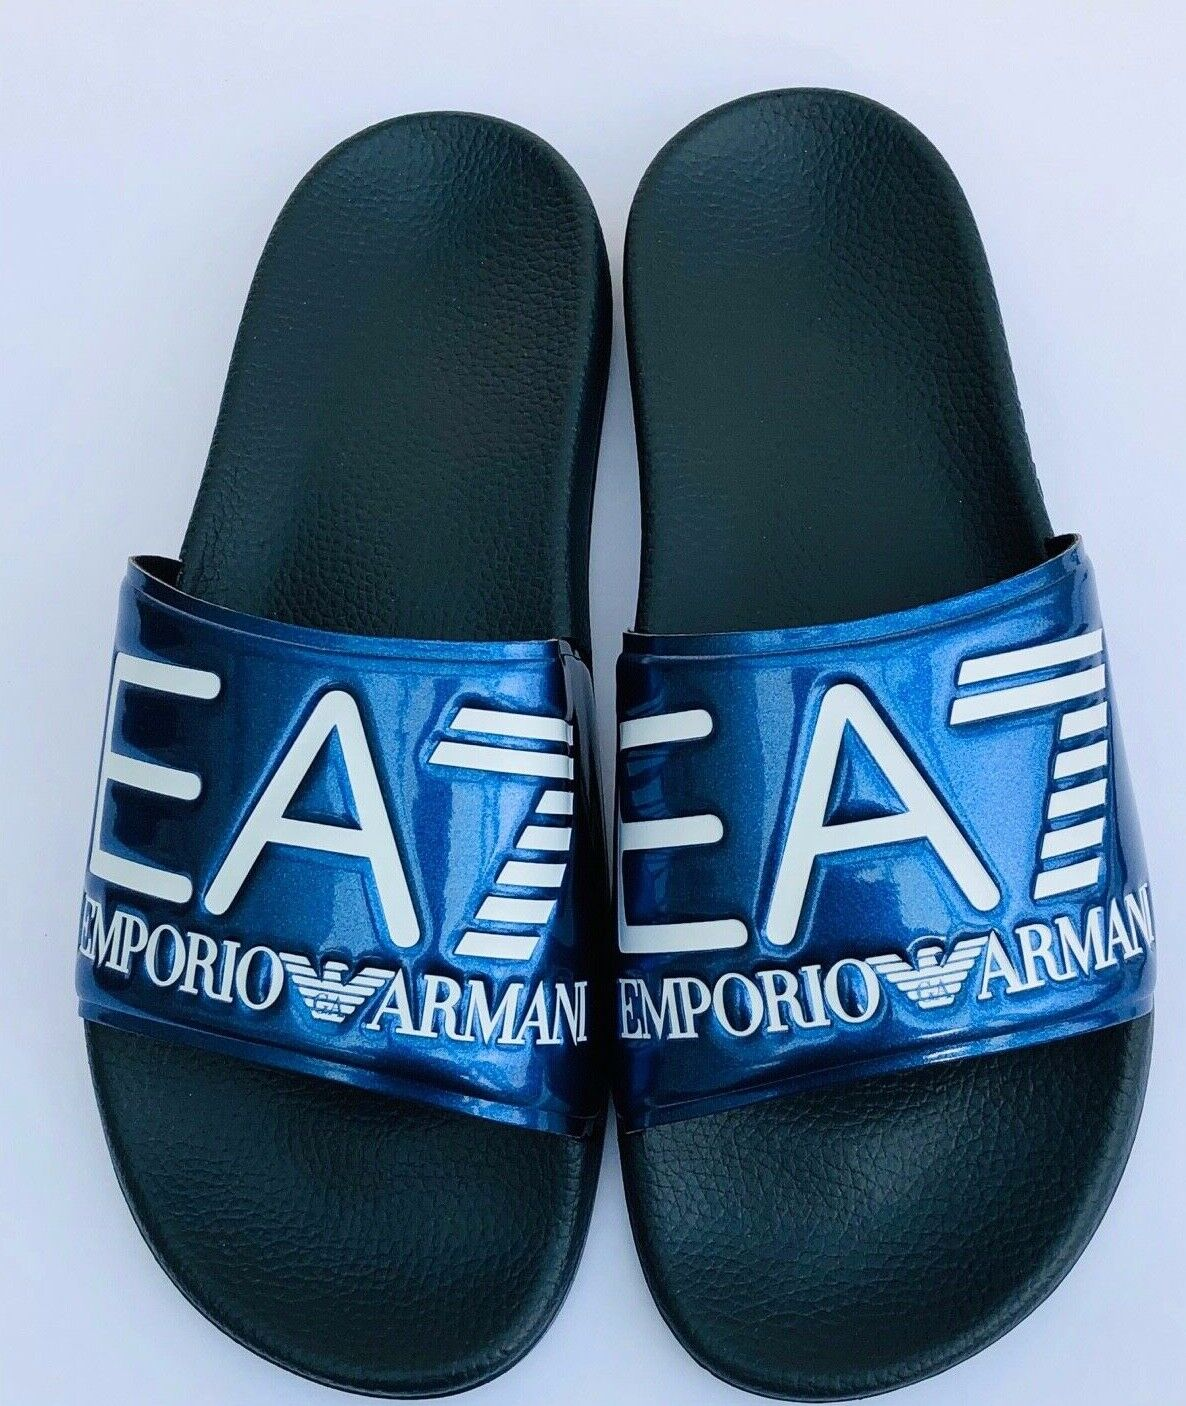 Emporio Armani EA7 Surf & Navy Sliders Sandals schuhe Größes UK 6.5 - 11 BNIB